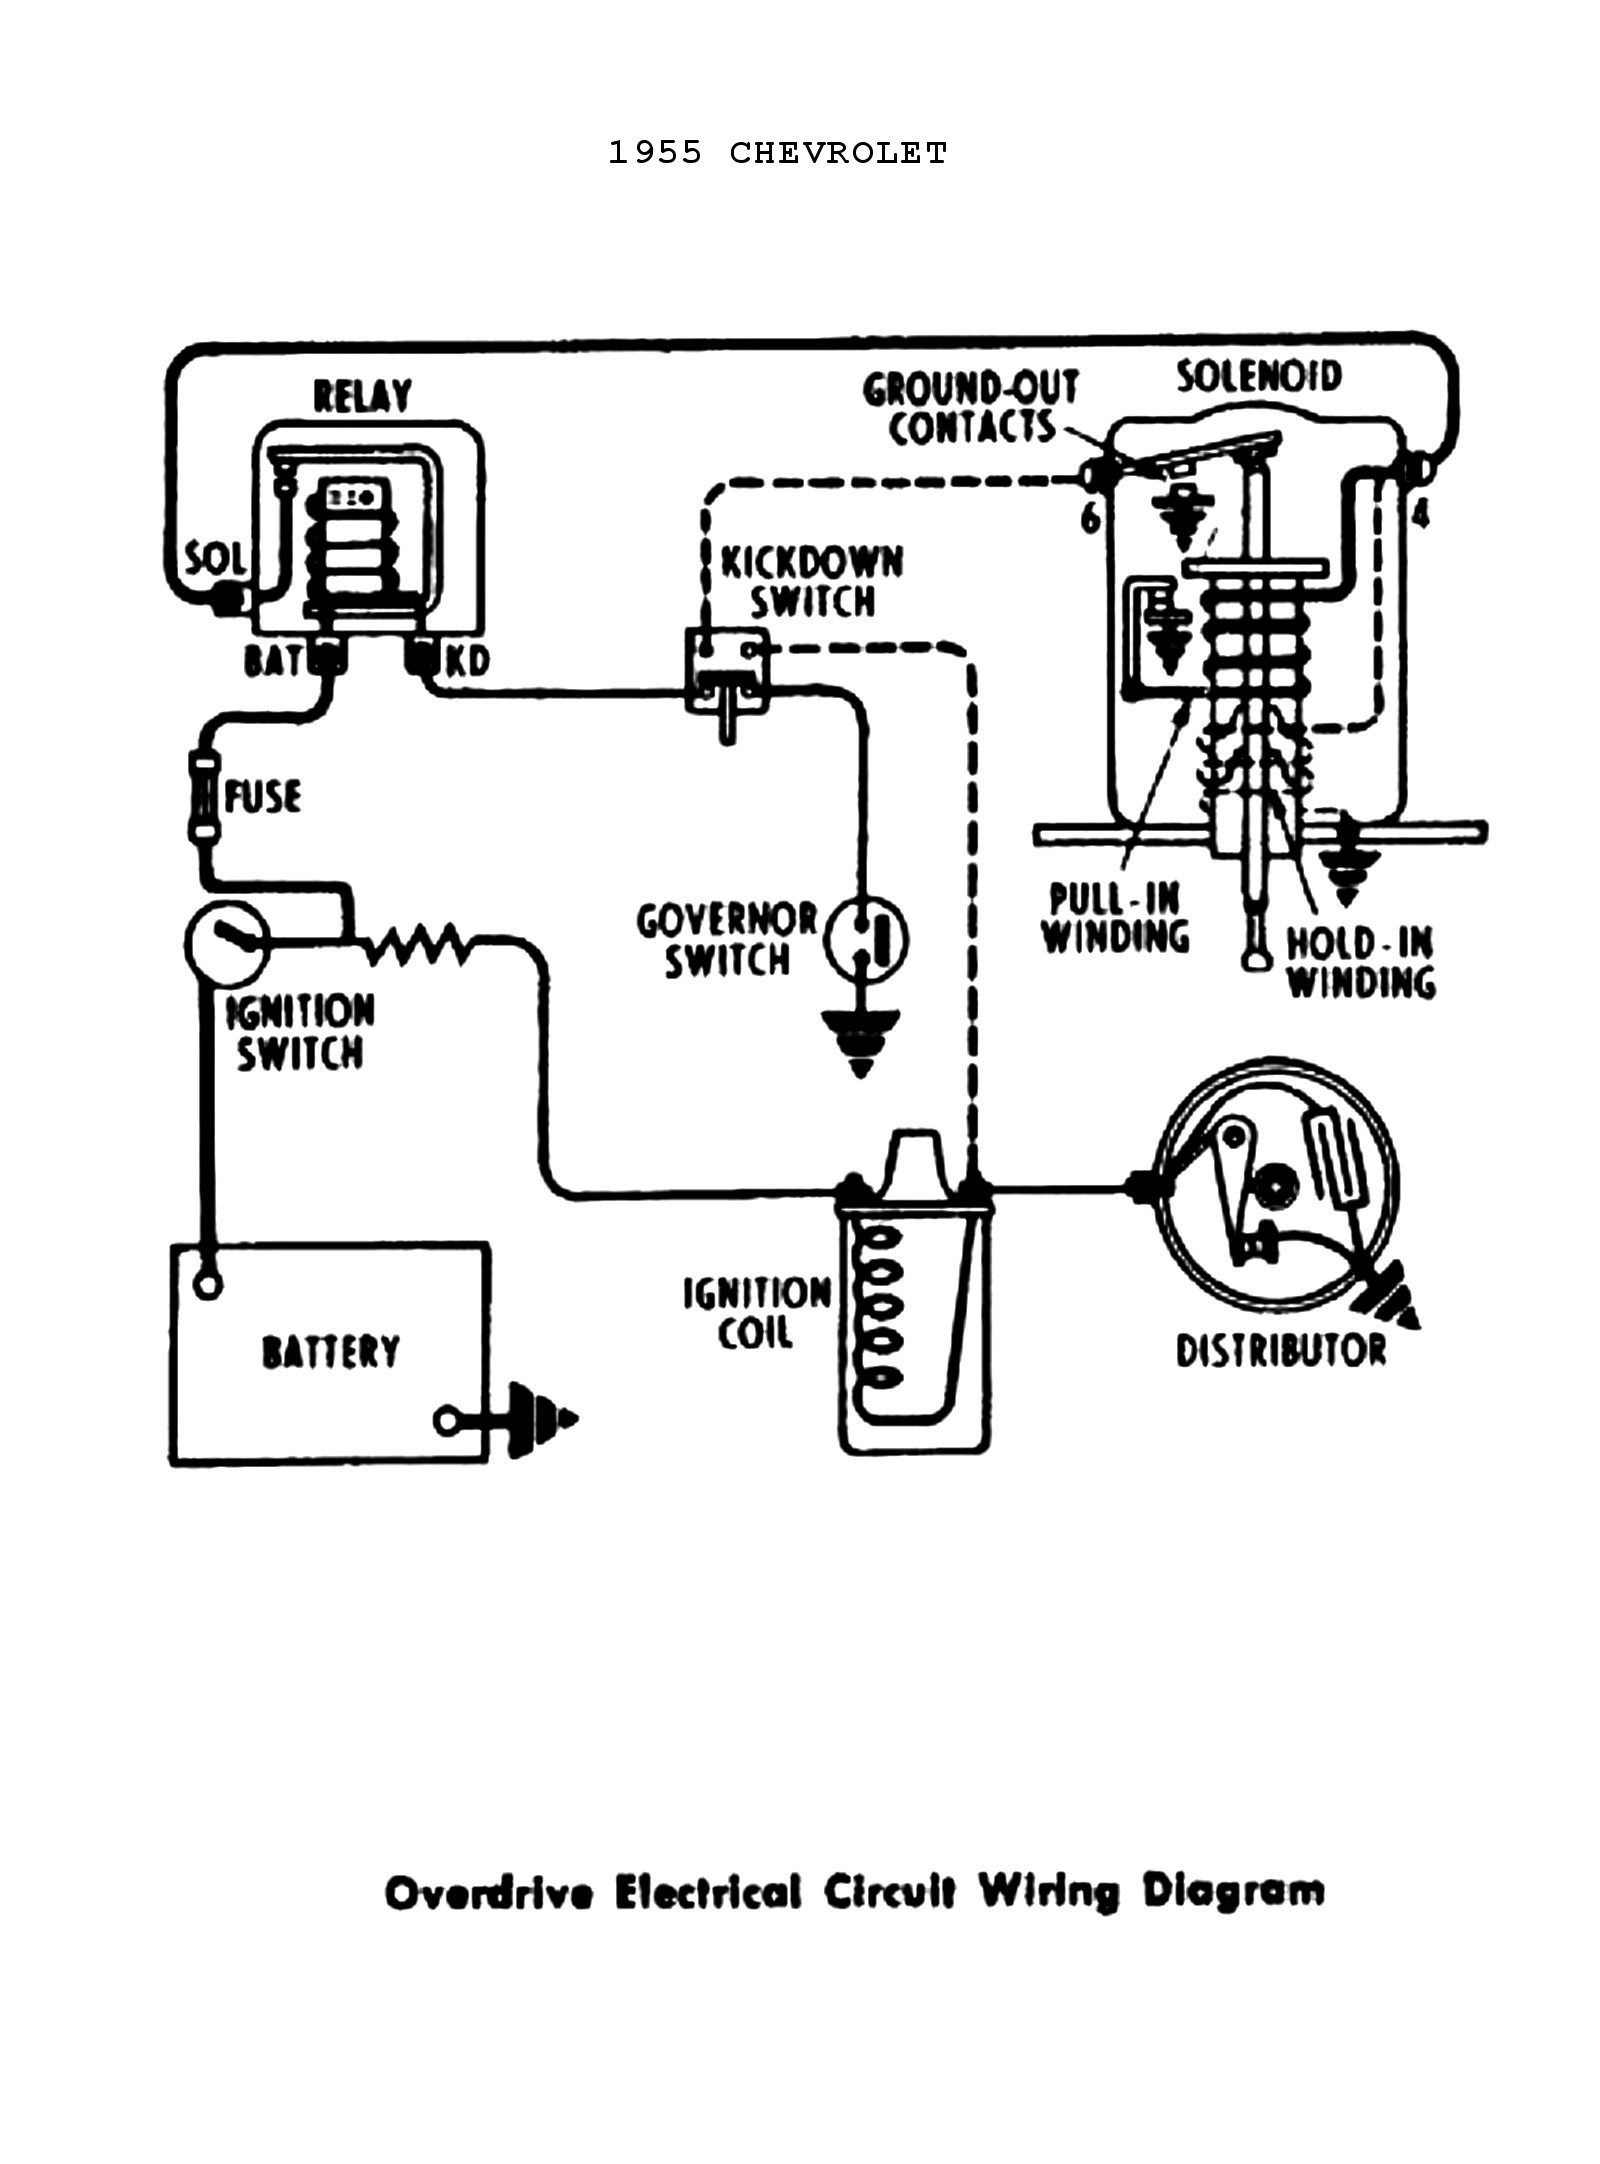 Car Electrical Wiring Diagram Chevy Wiring Diagrams Of Car Electrical Wiring Diagram